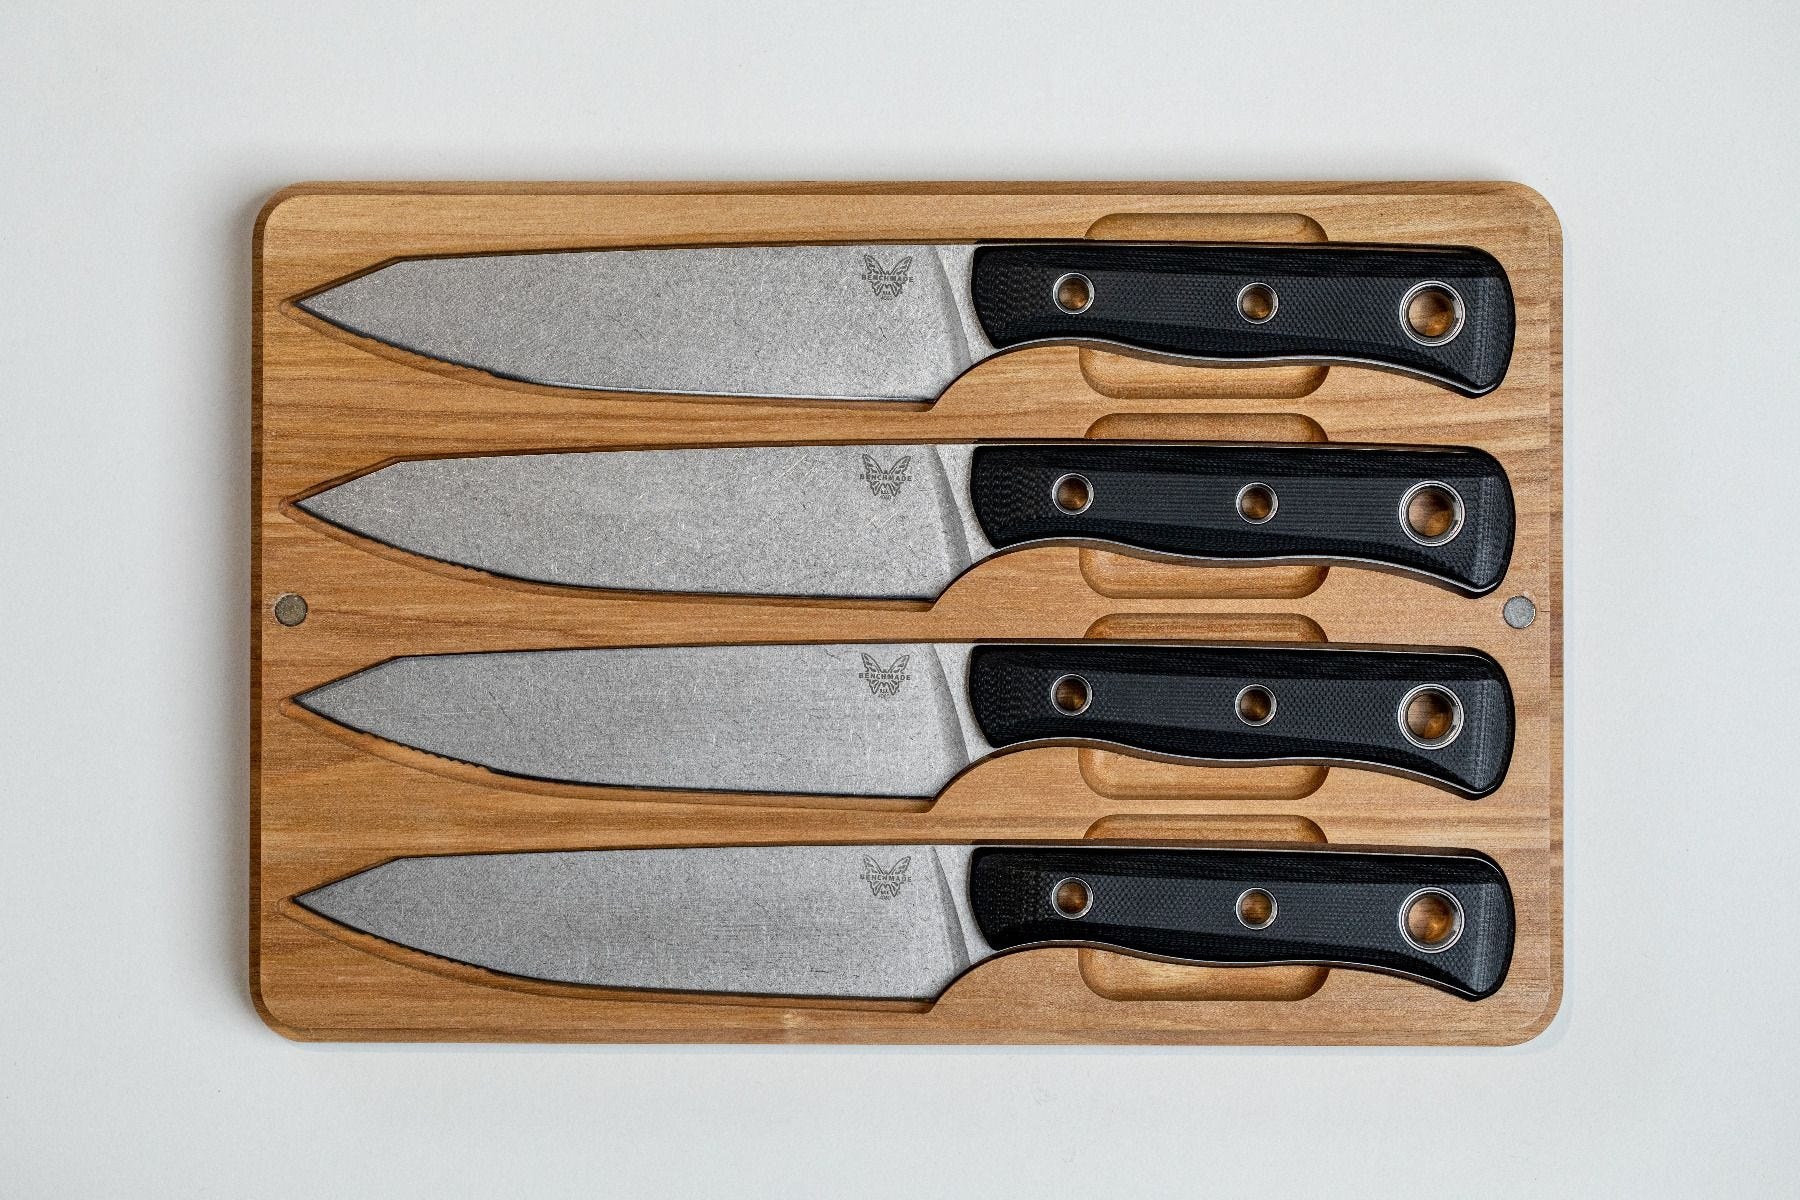 benchmade table knife set box